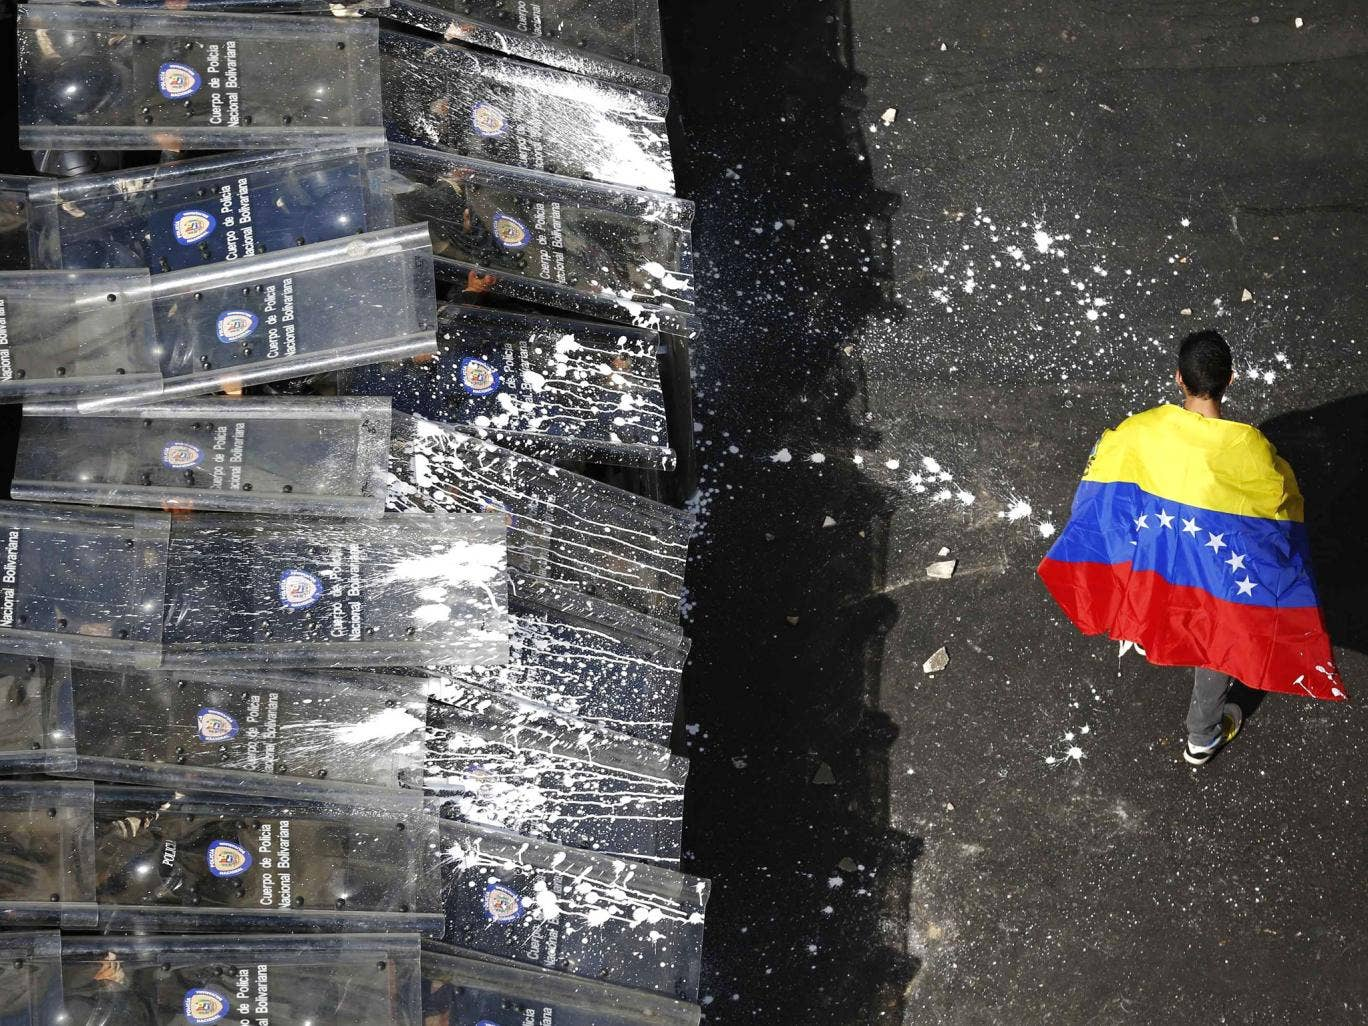 A demonstrator with a Venezuelan flag draped around himself protests against the government of Venezuela's President Nicolas Maduro, in front of a riot police line in Caracas